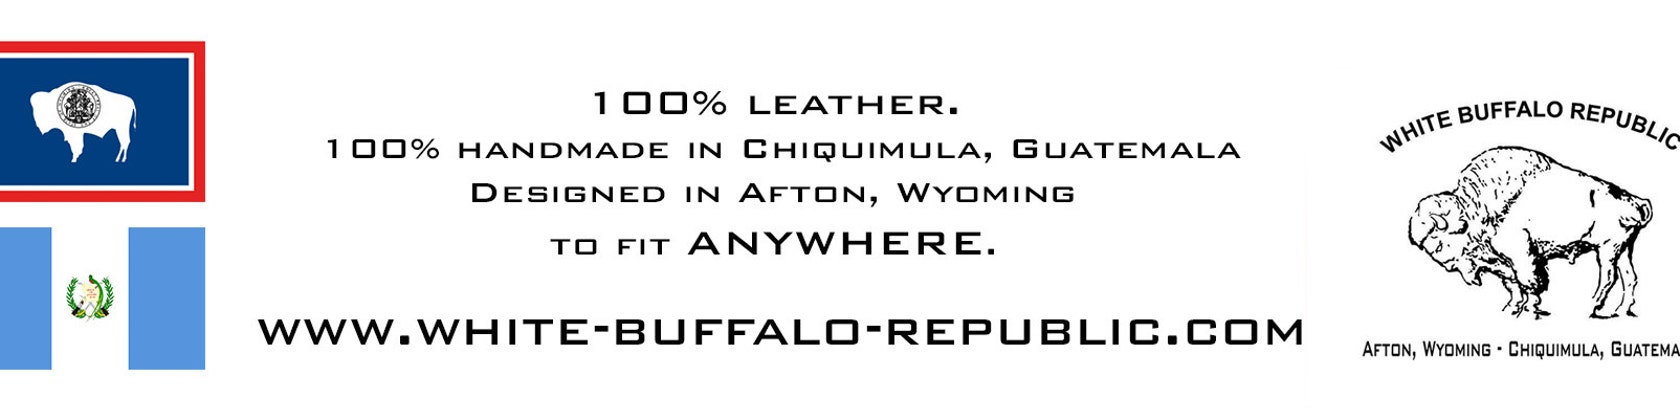 leather messenger bags and briefcases by whitebuffalorepublic